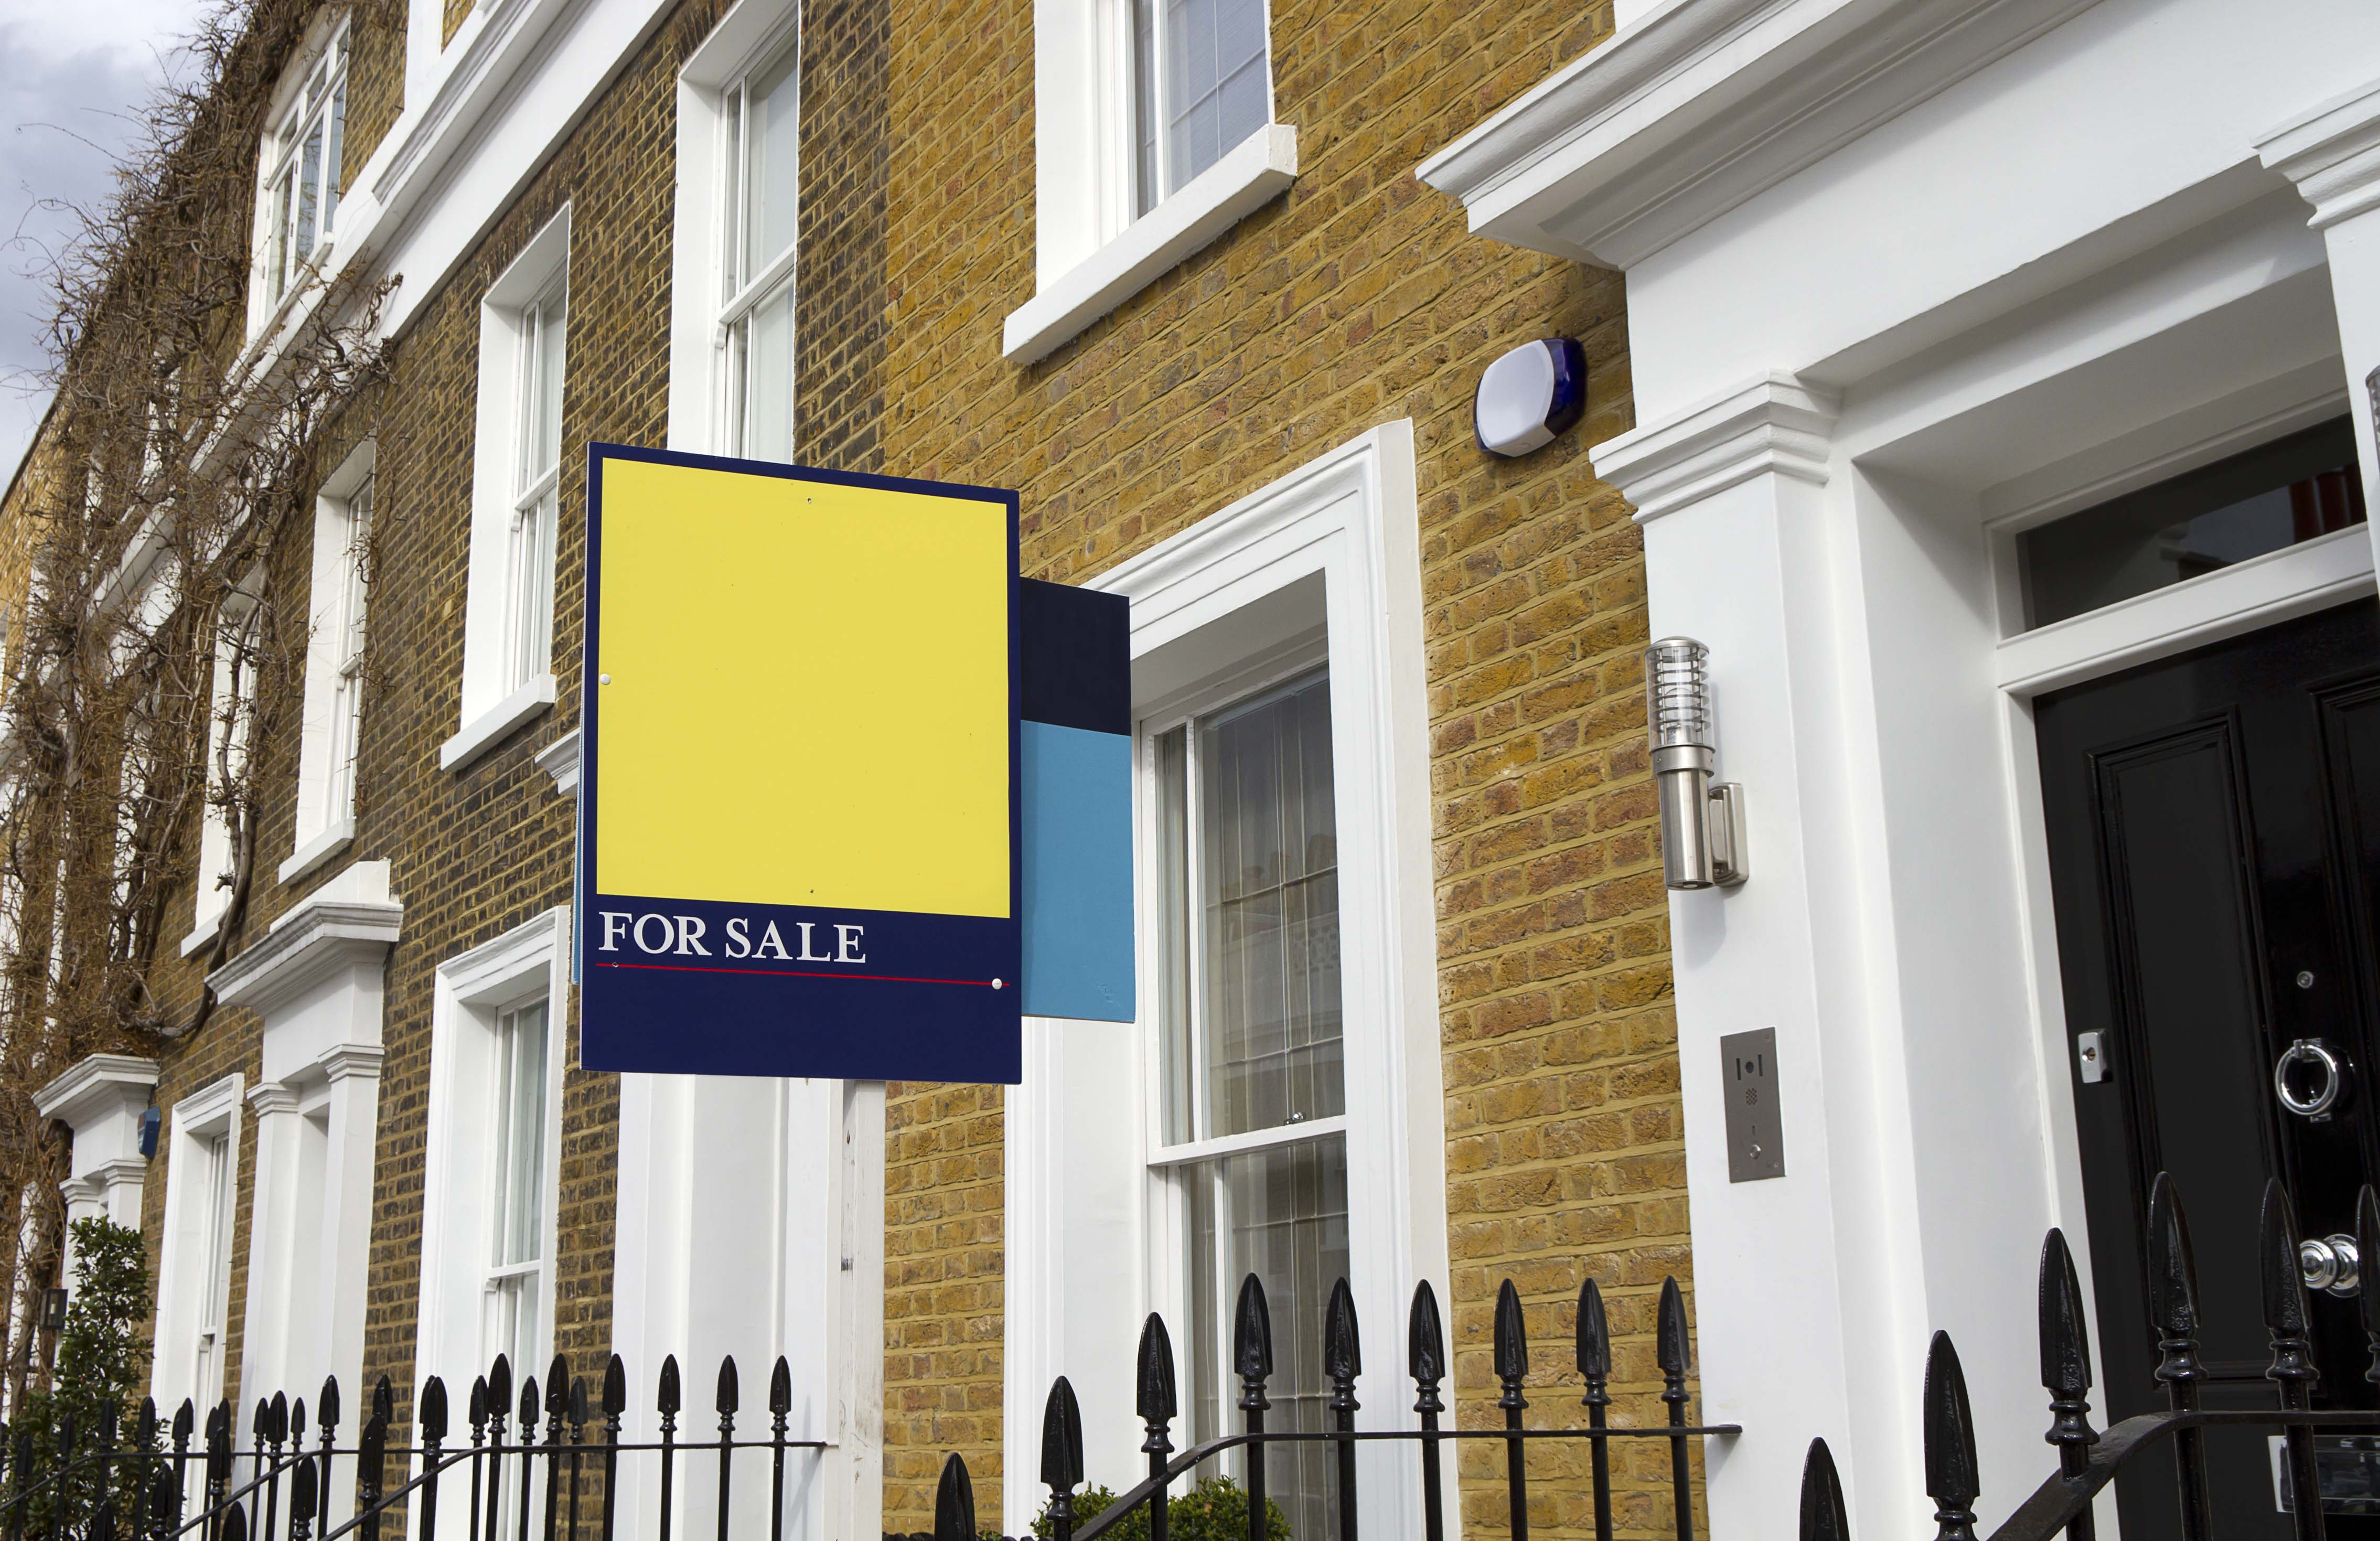 2321464-for-sale-sign-london-street